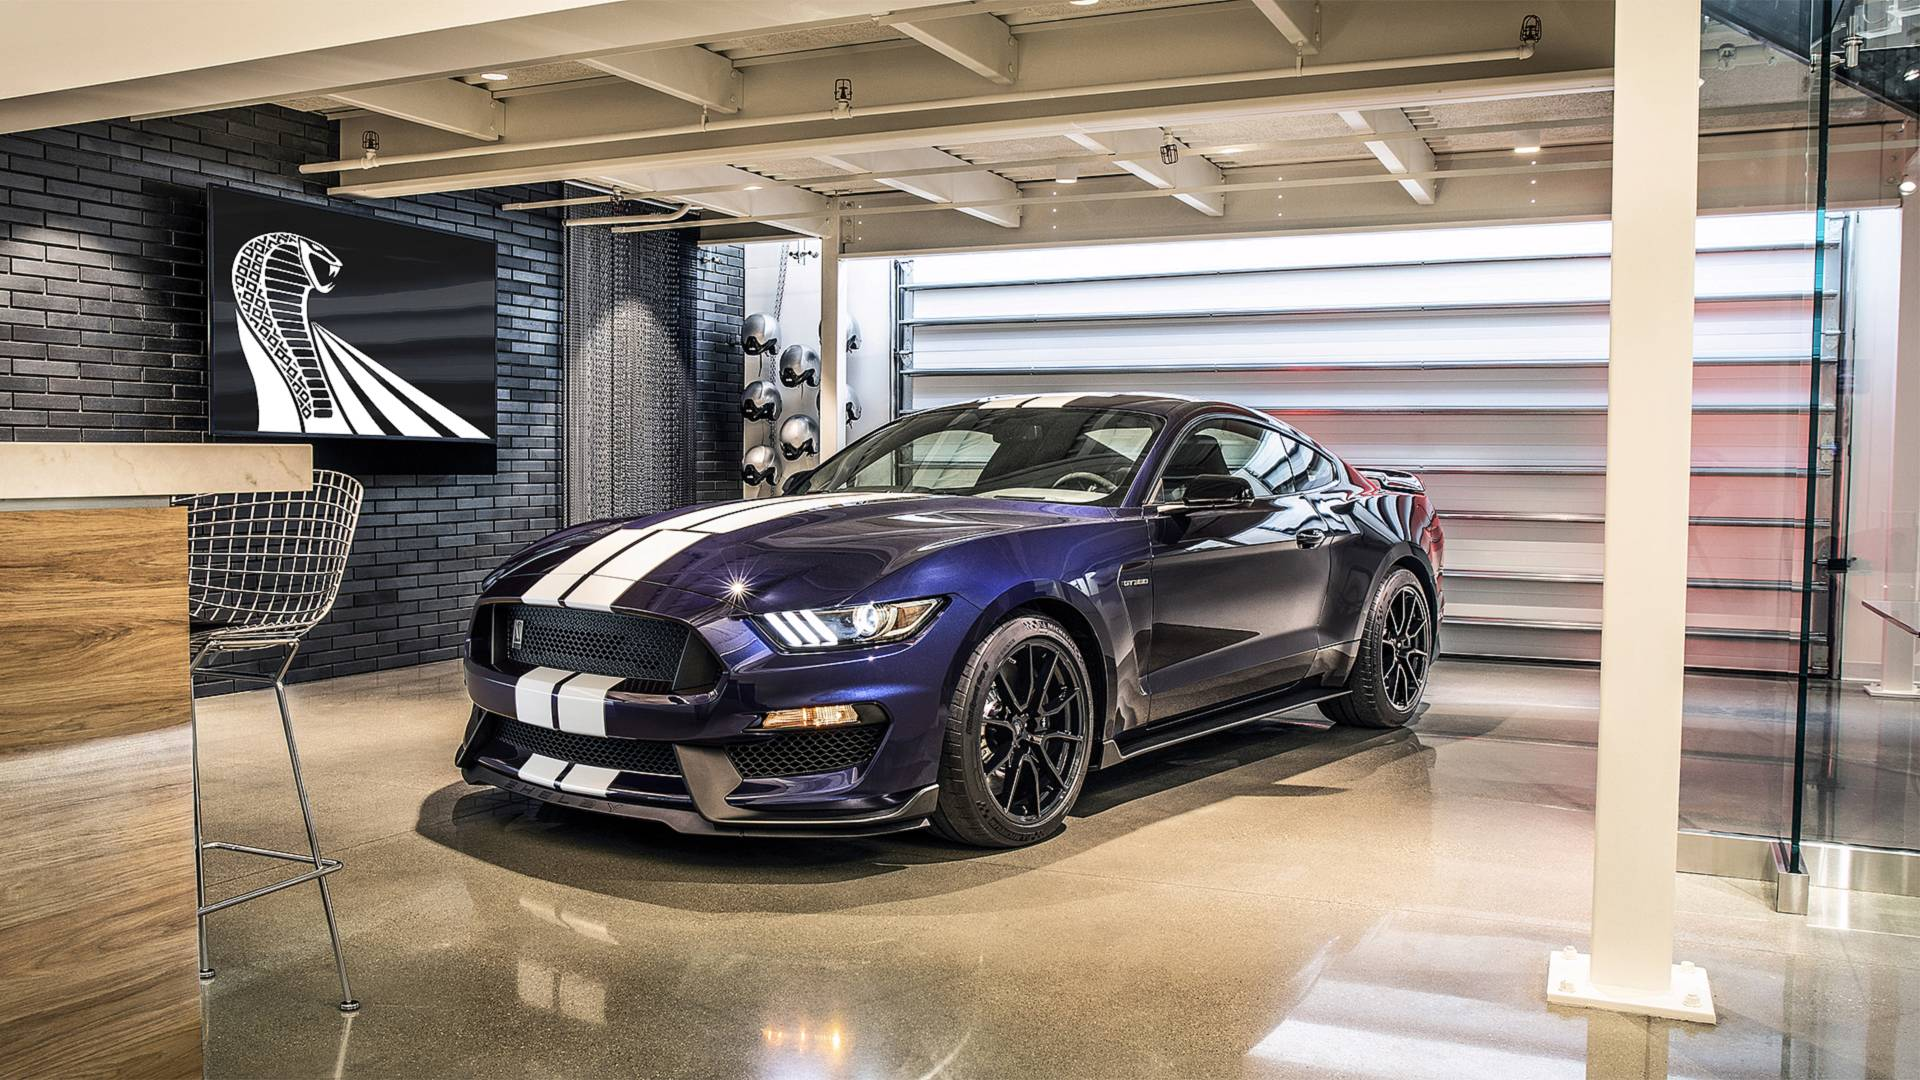 2019-ford-mustang-shelby-gt350 (3).jpg